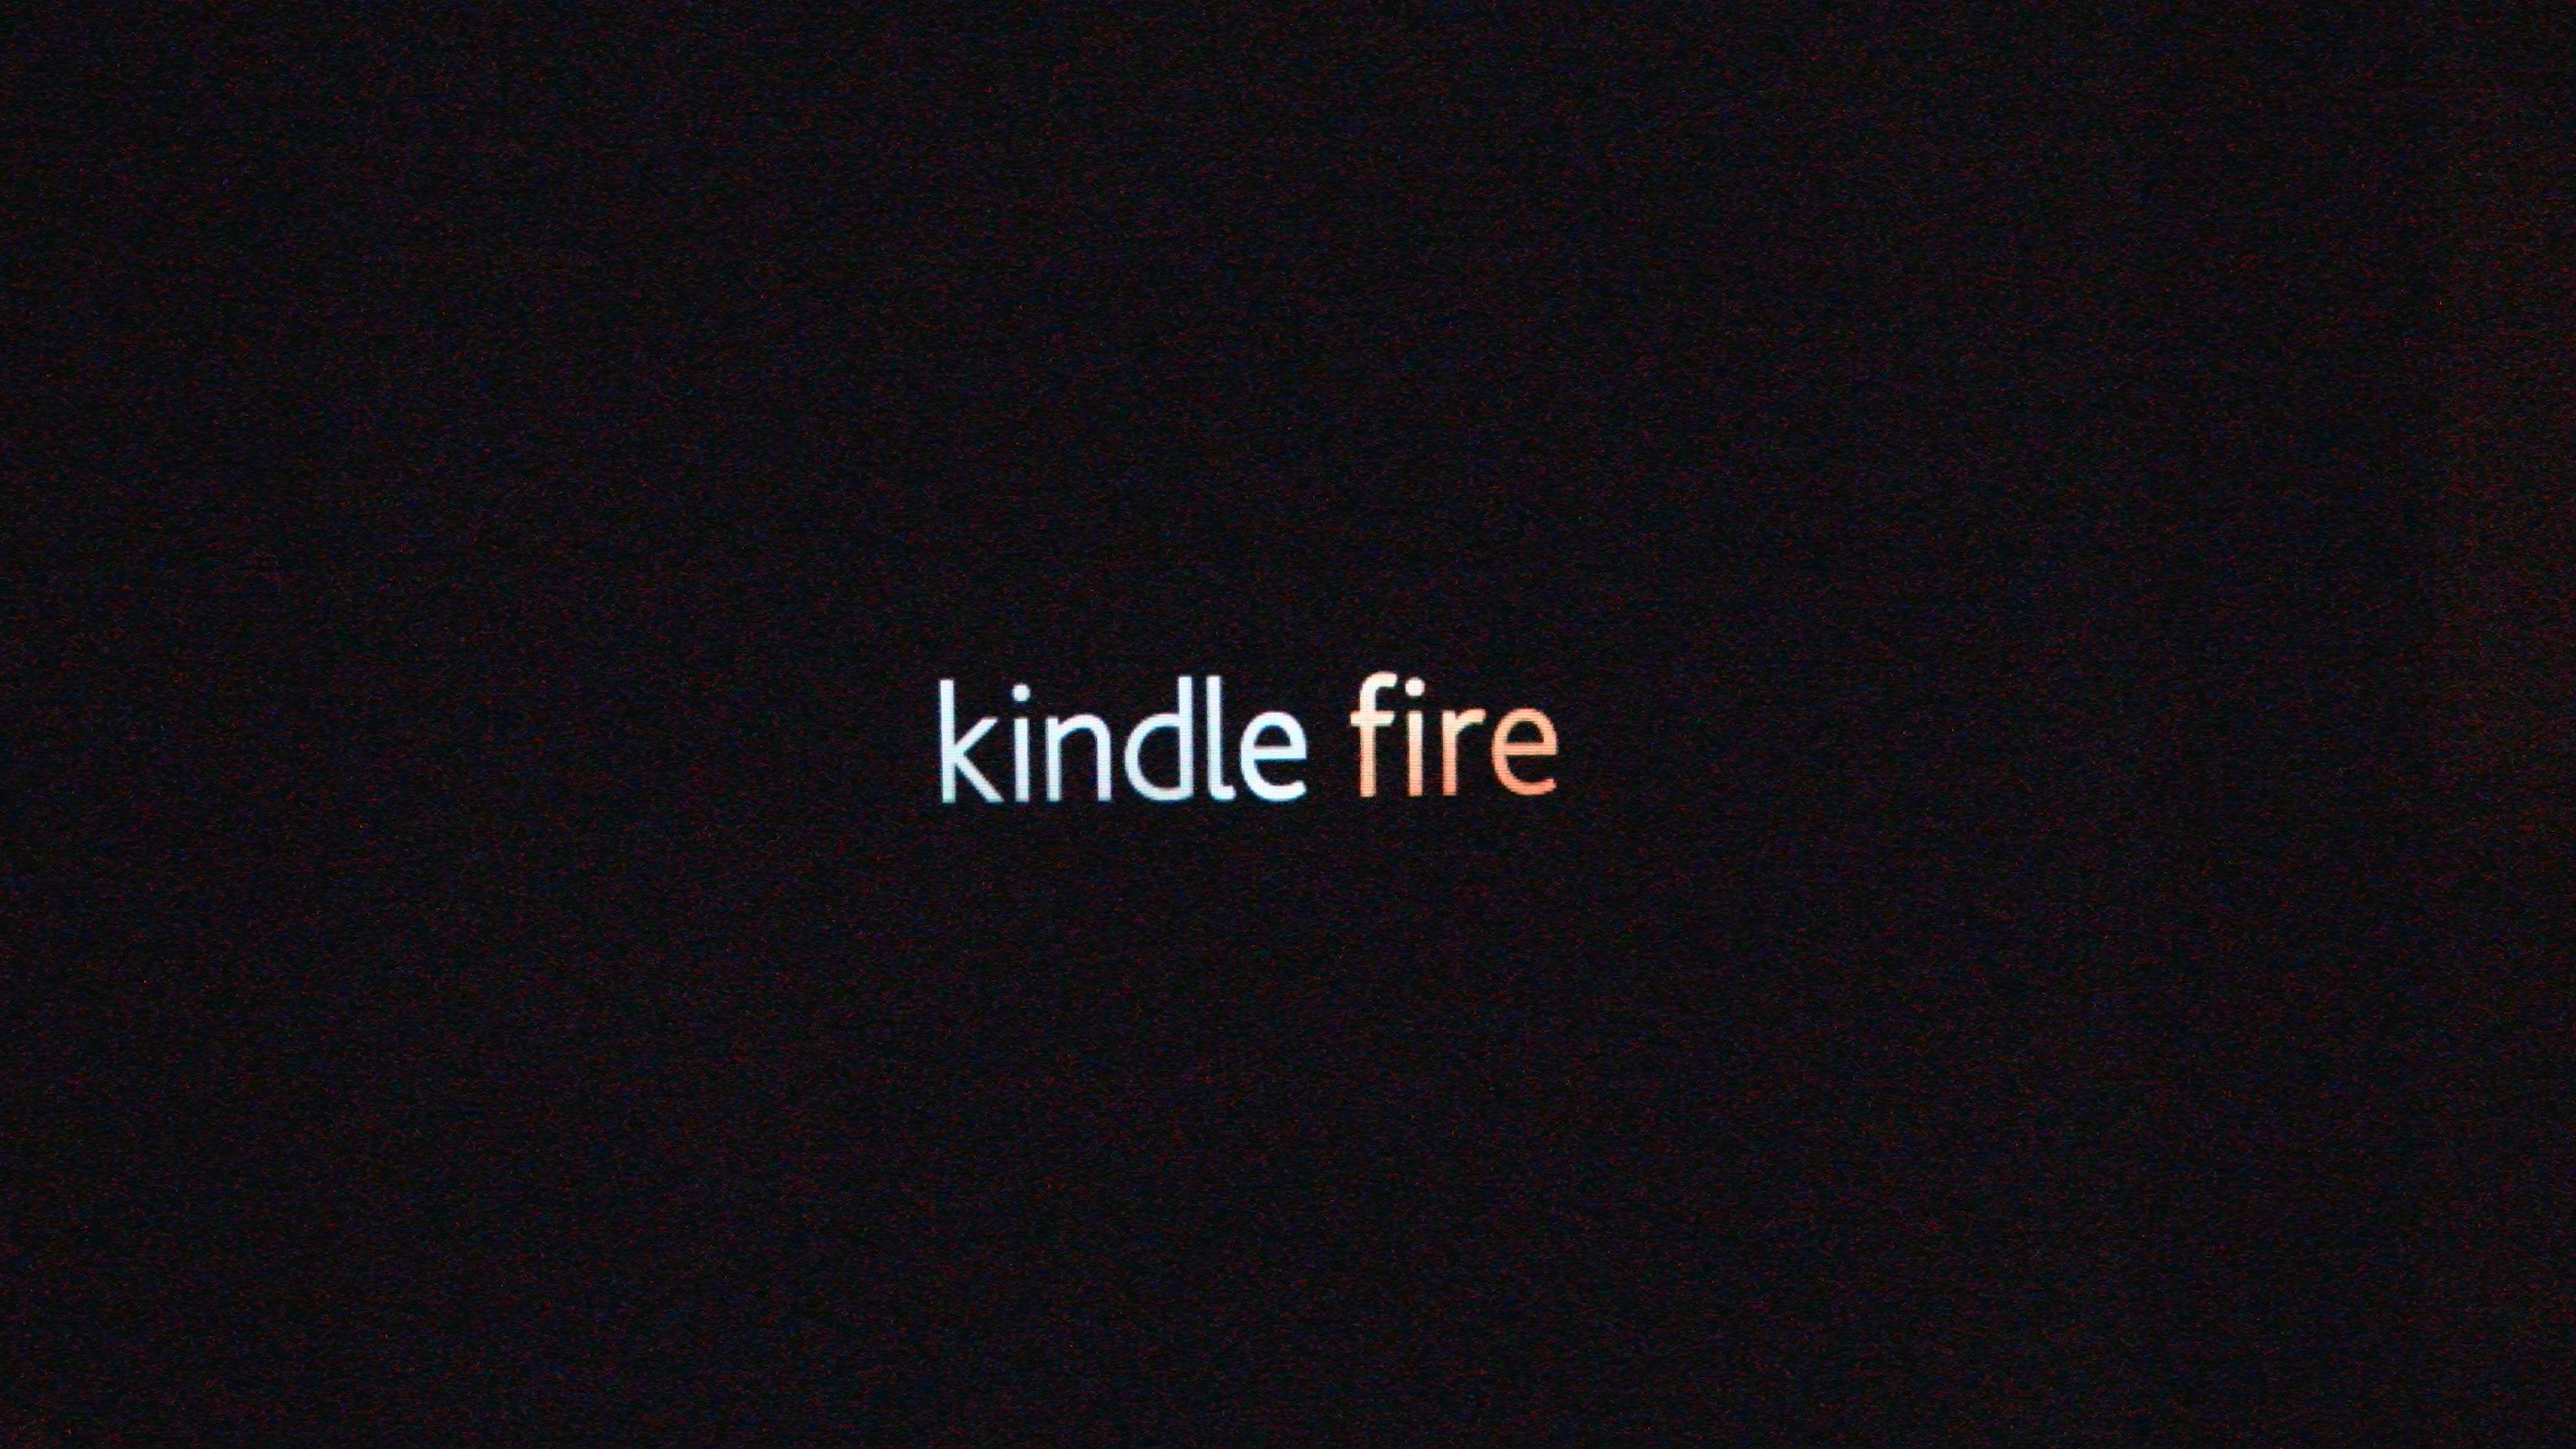 Kindle Fire Tablet Wallpaper  WallpaperSafari